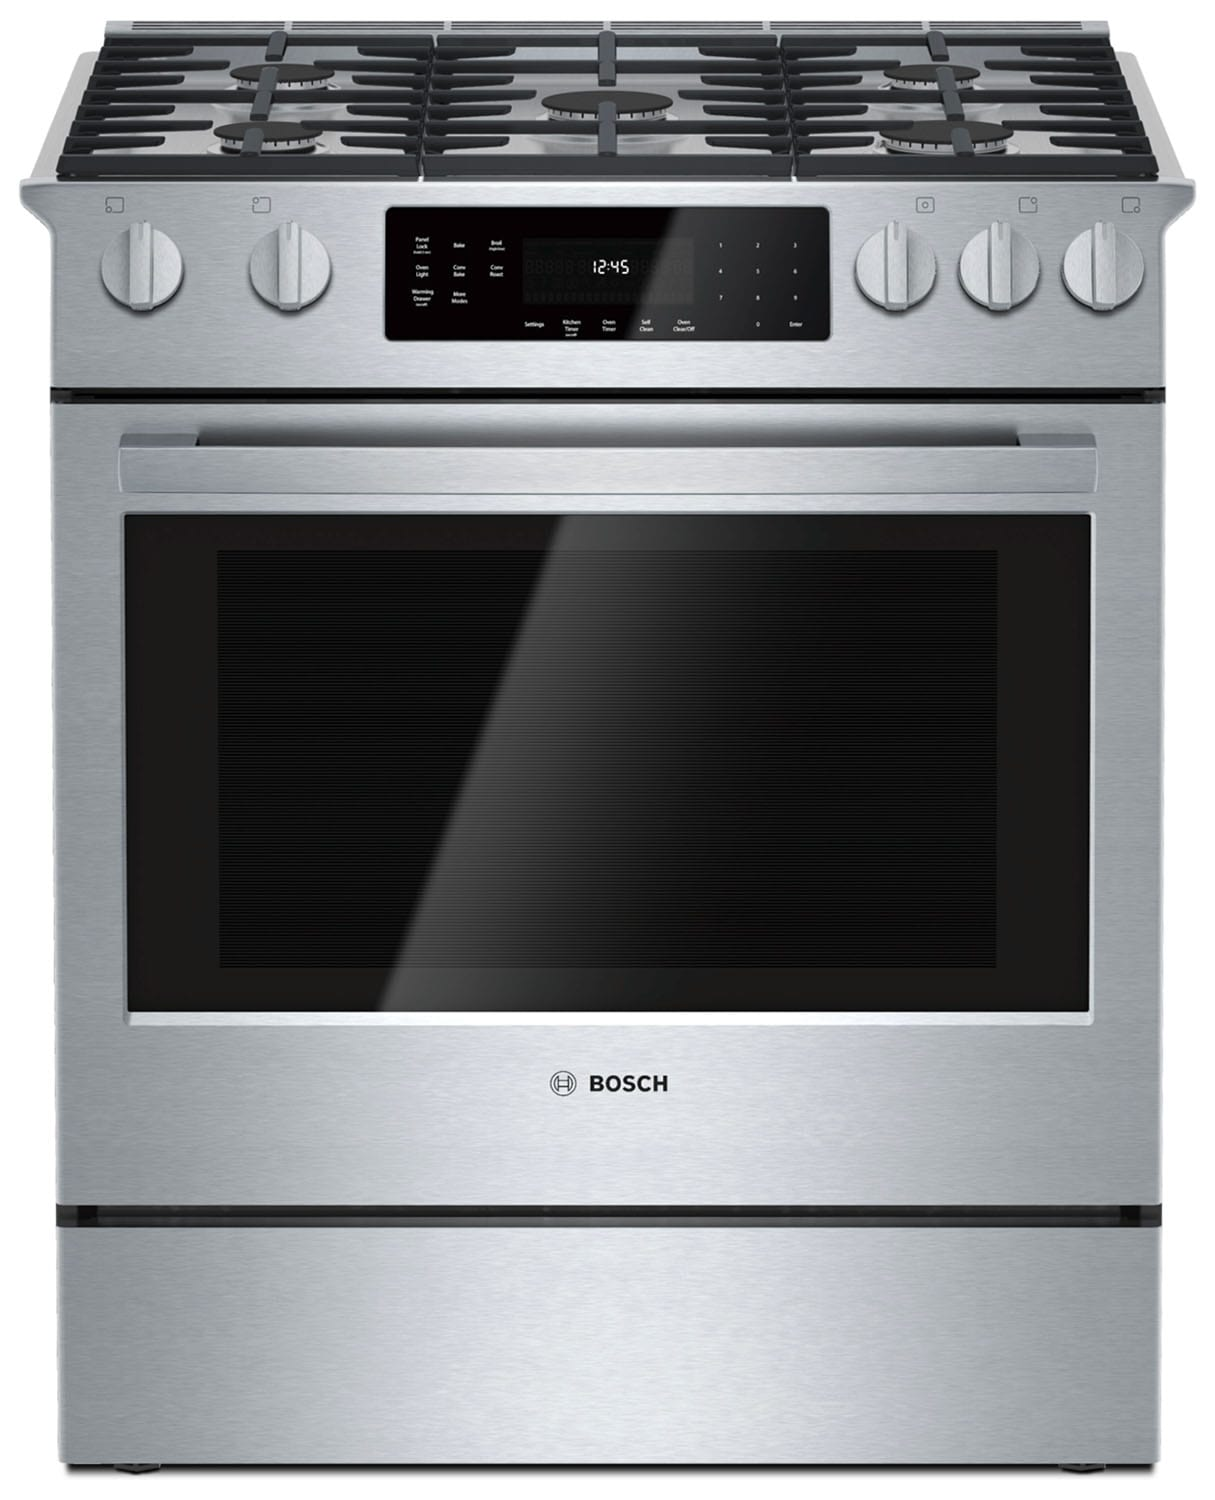 Bosch Stainless Steel Slide-In Gas Range (4.8 Cu. Ft.) - HGI8054UC